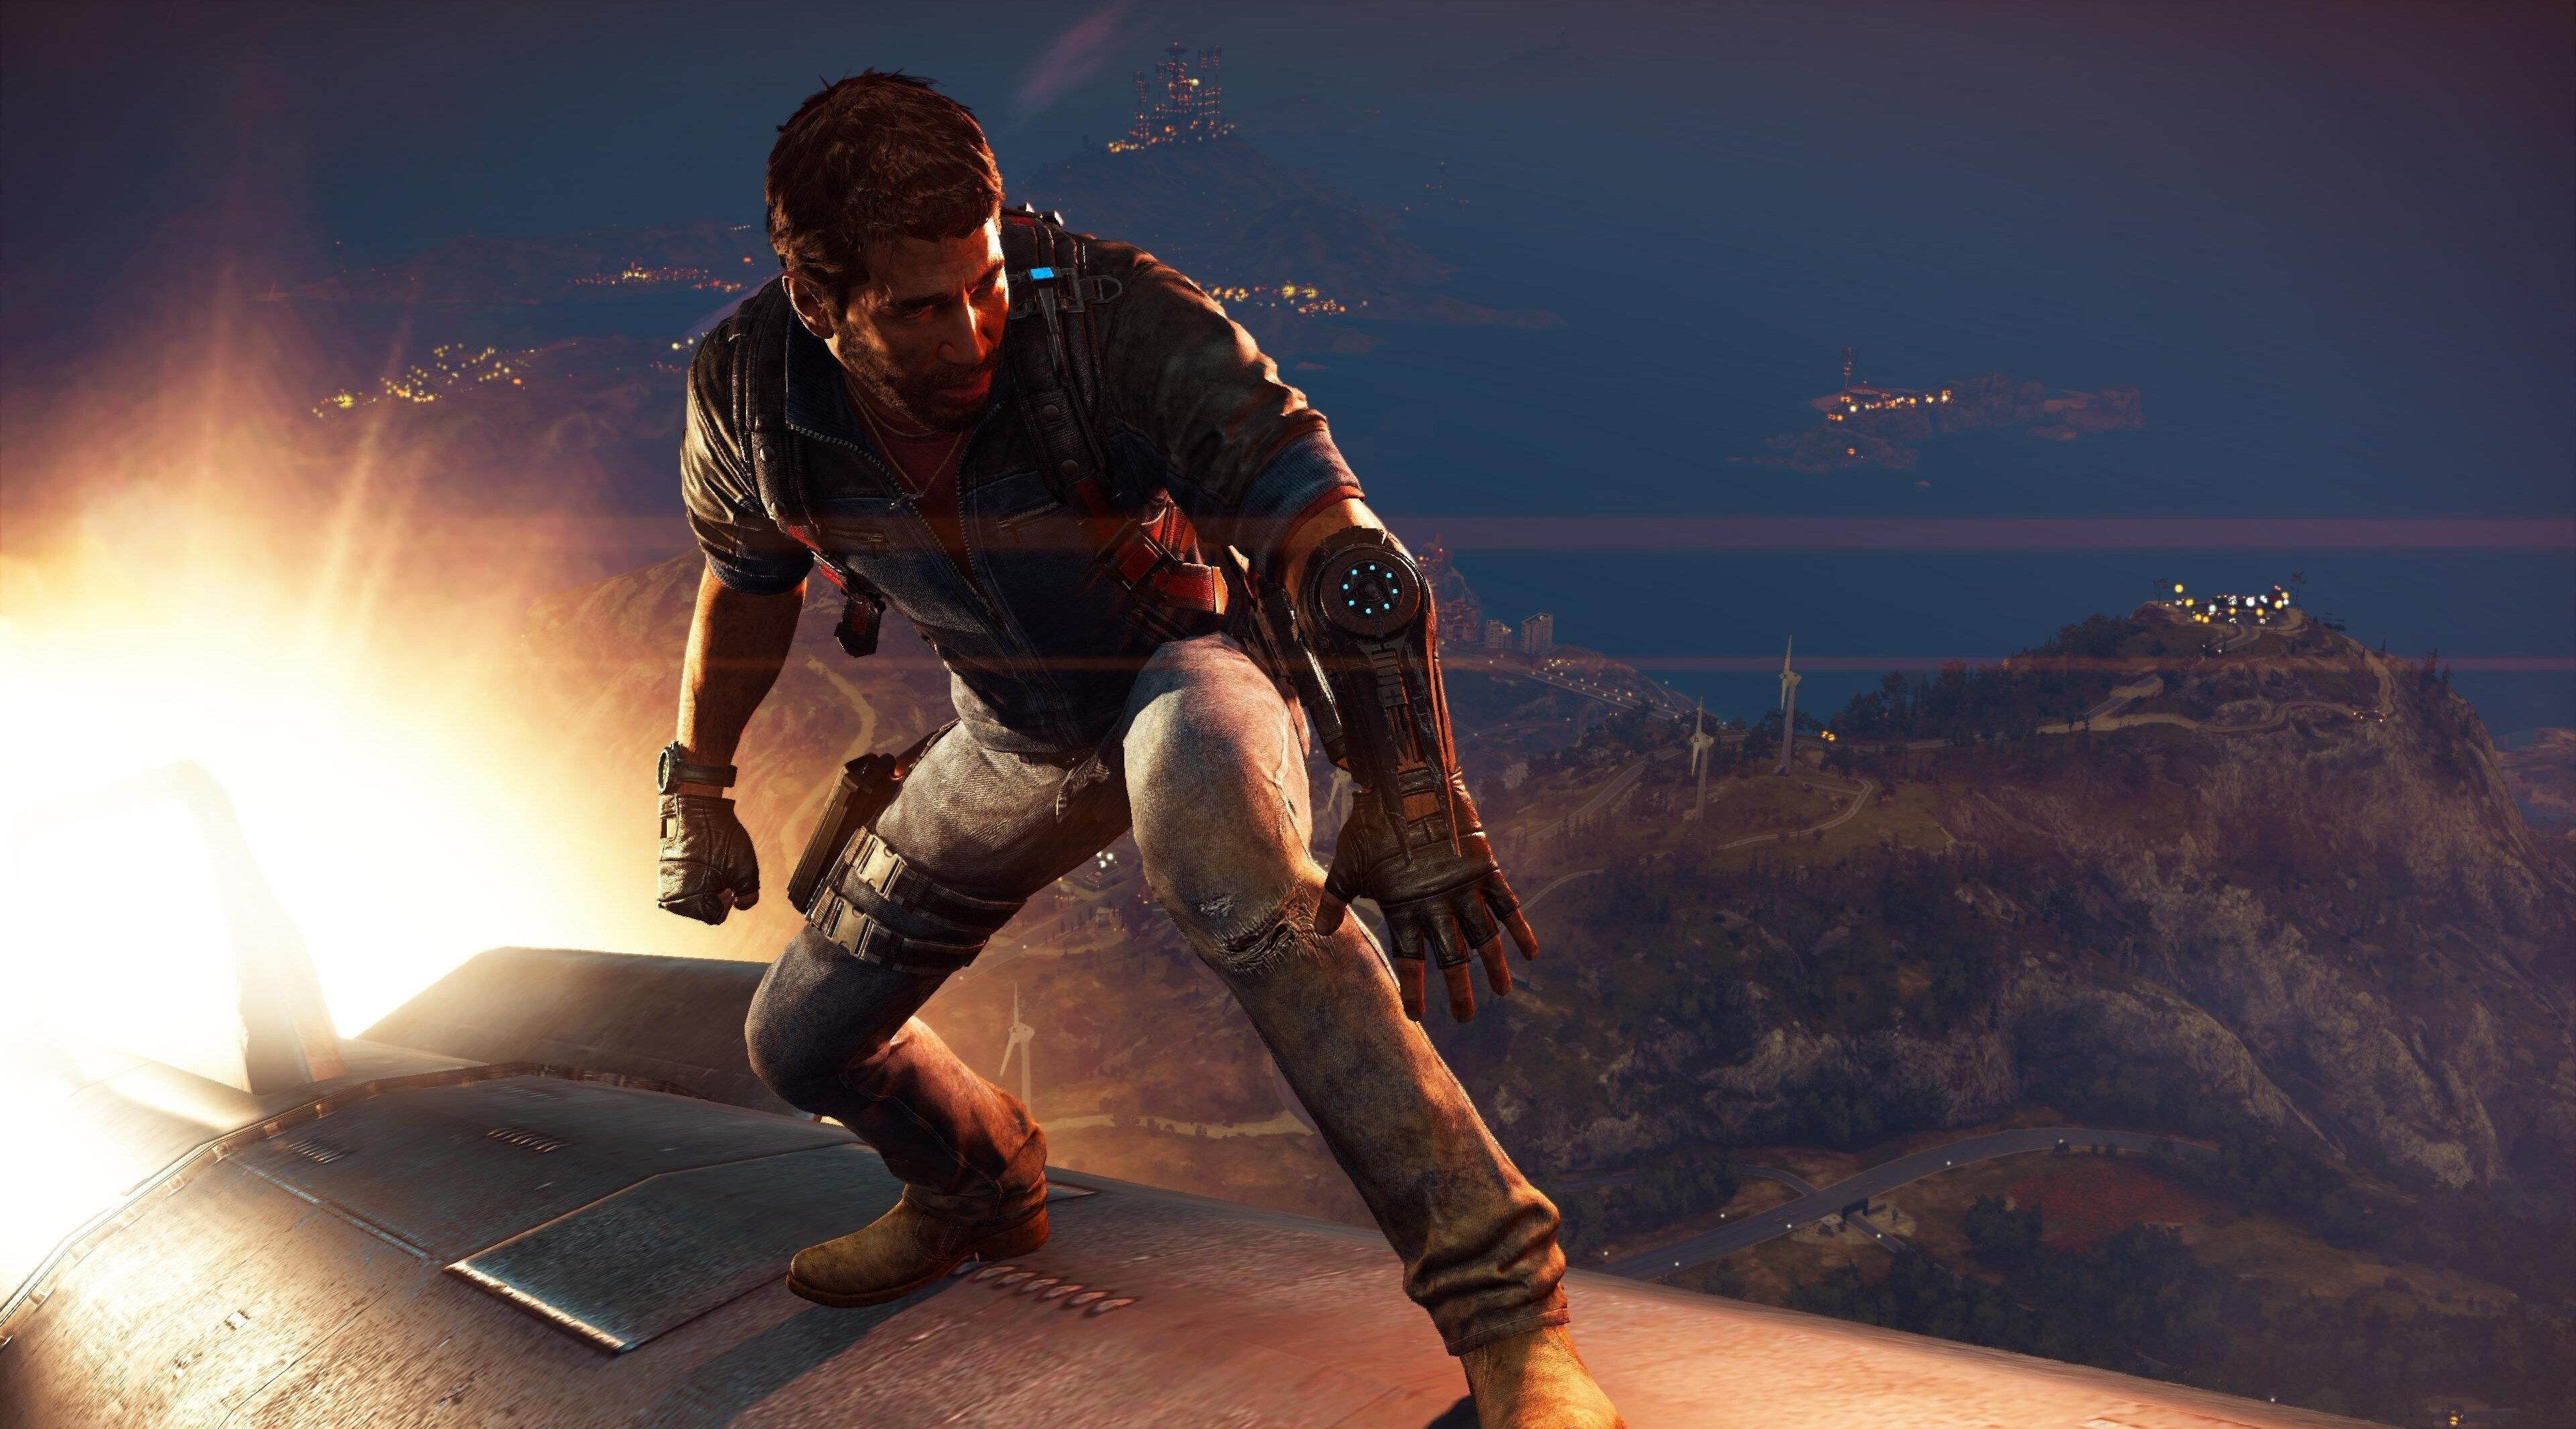 3840x2130 Just Cause 3 4k Wallpaper Screensaver Just Cause 3 Steam Pc Games Steam Pc